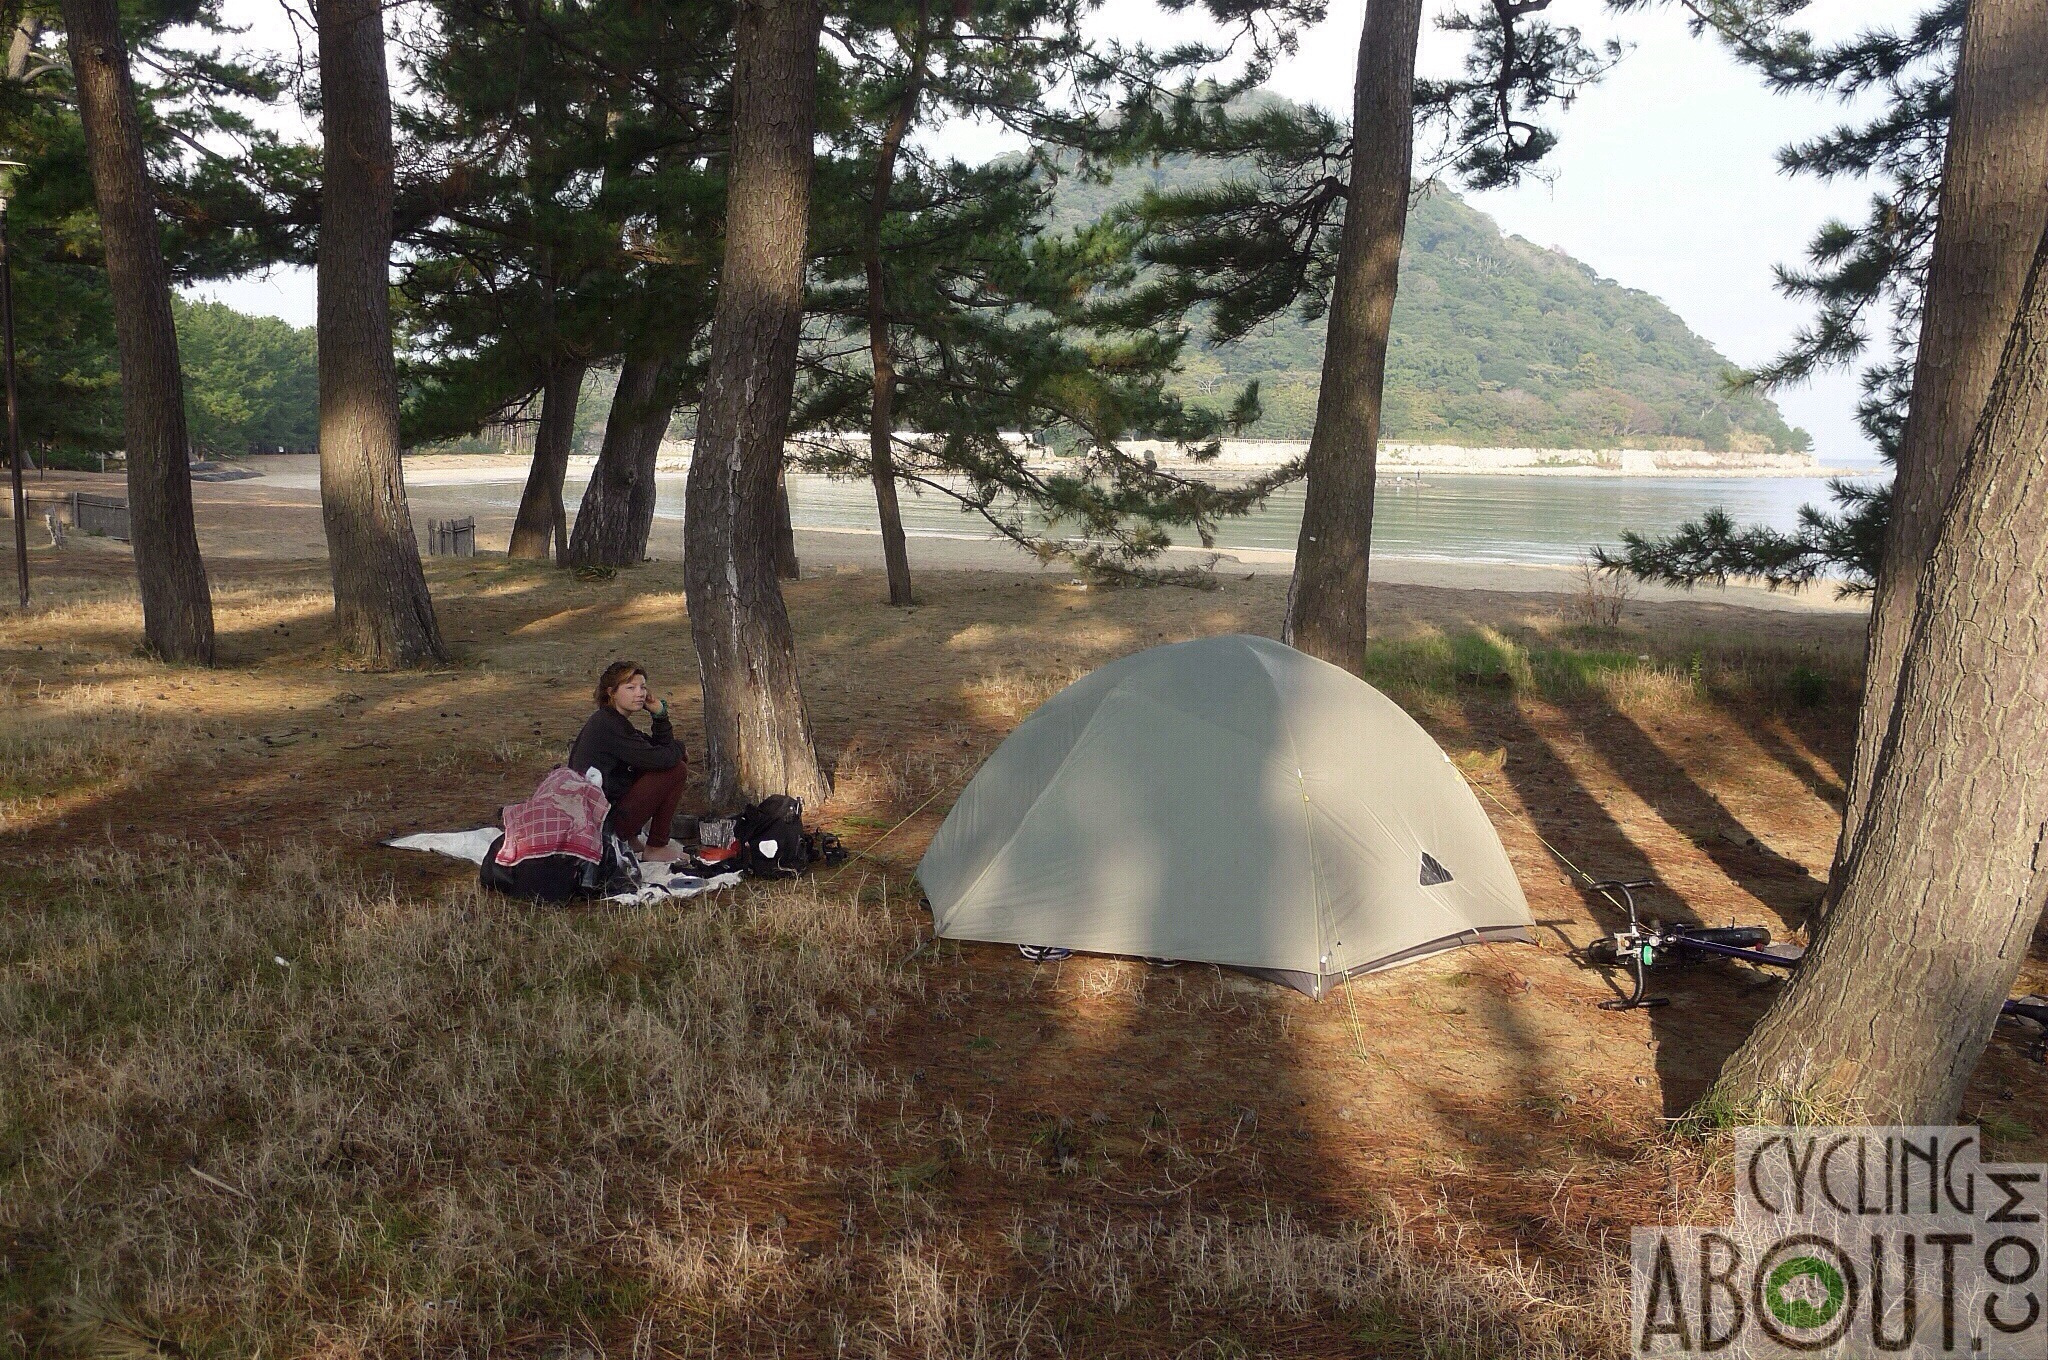 Alleykat_camping in Japan